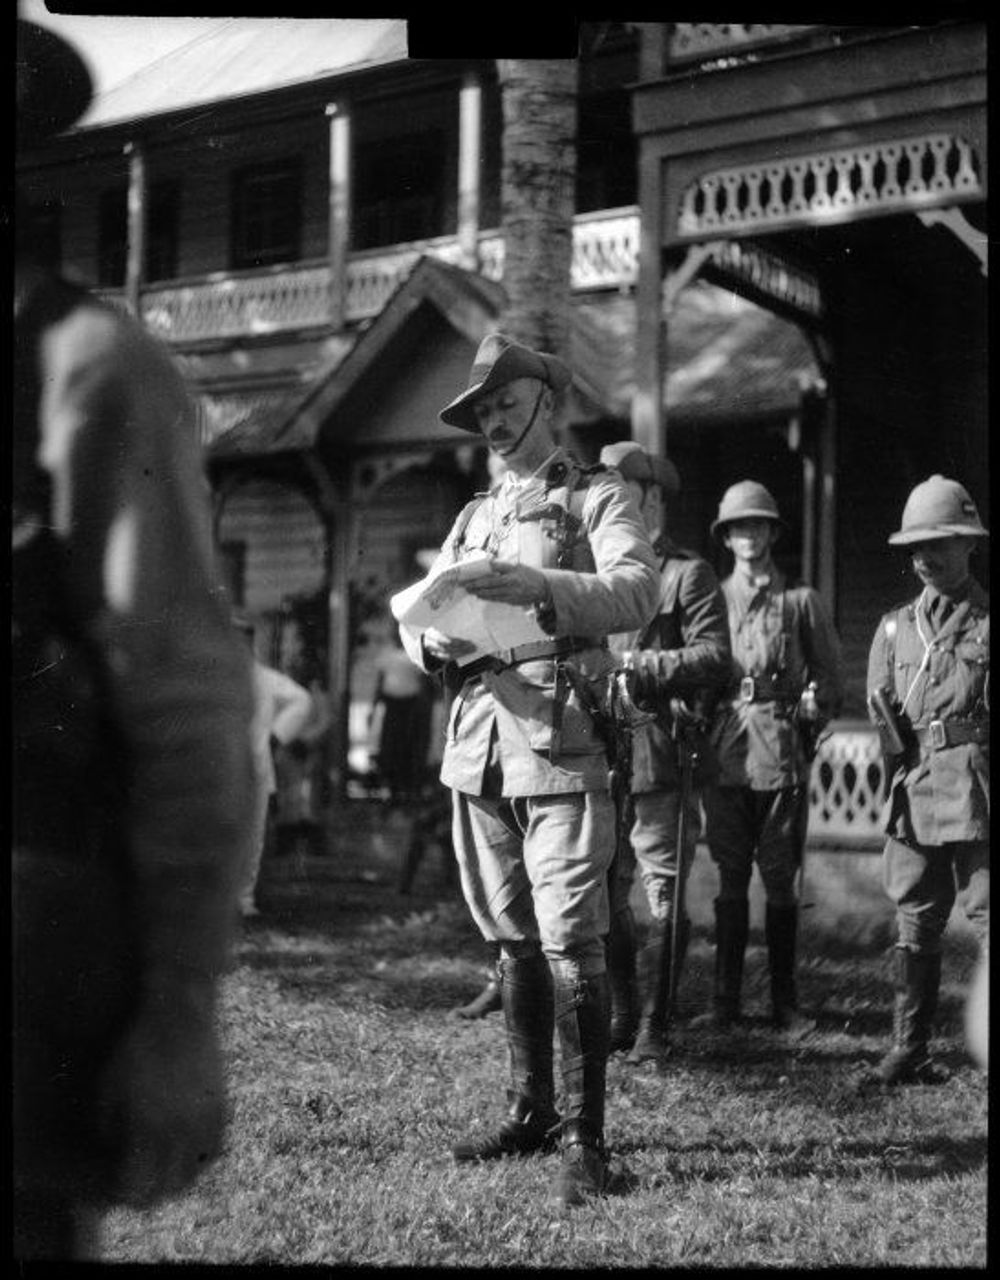 Colonel Robert Logan proclaiming British rule over Samoa. From Alexander Turnbull Library